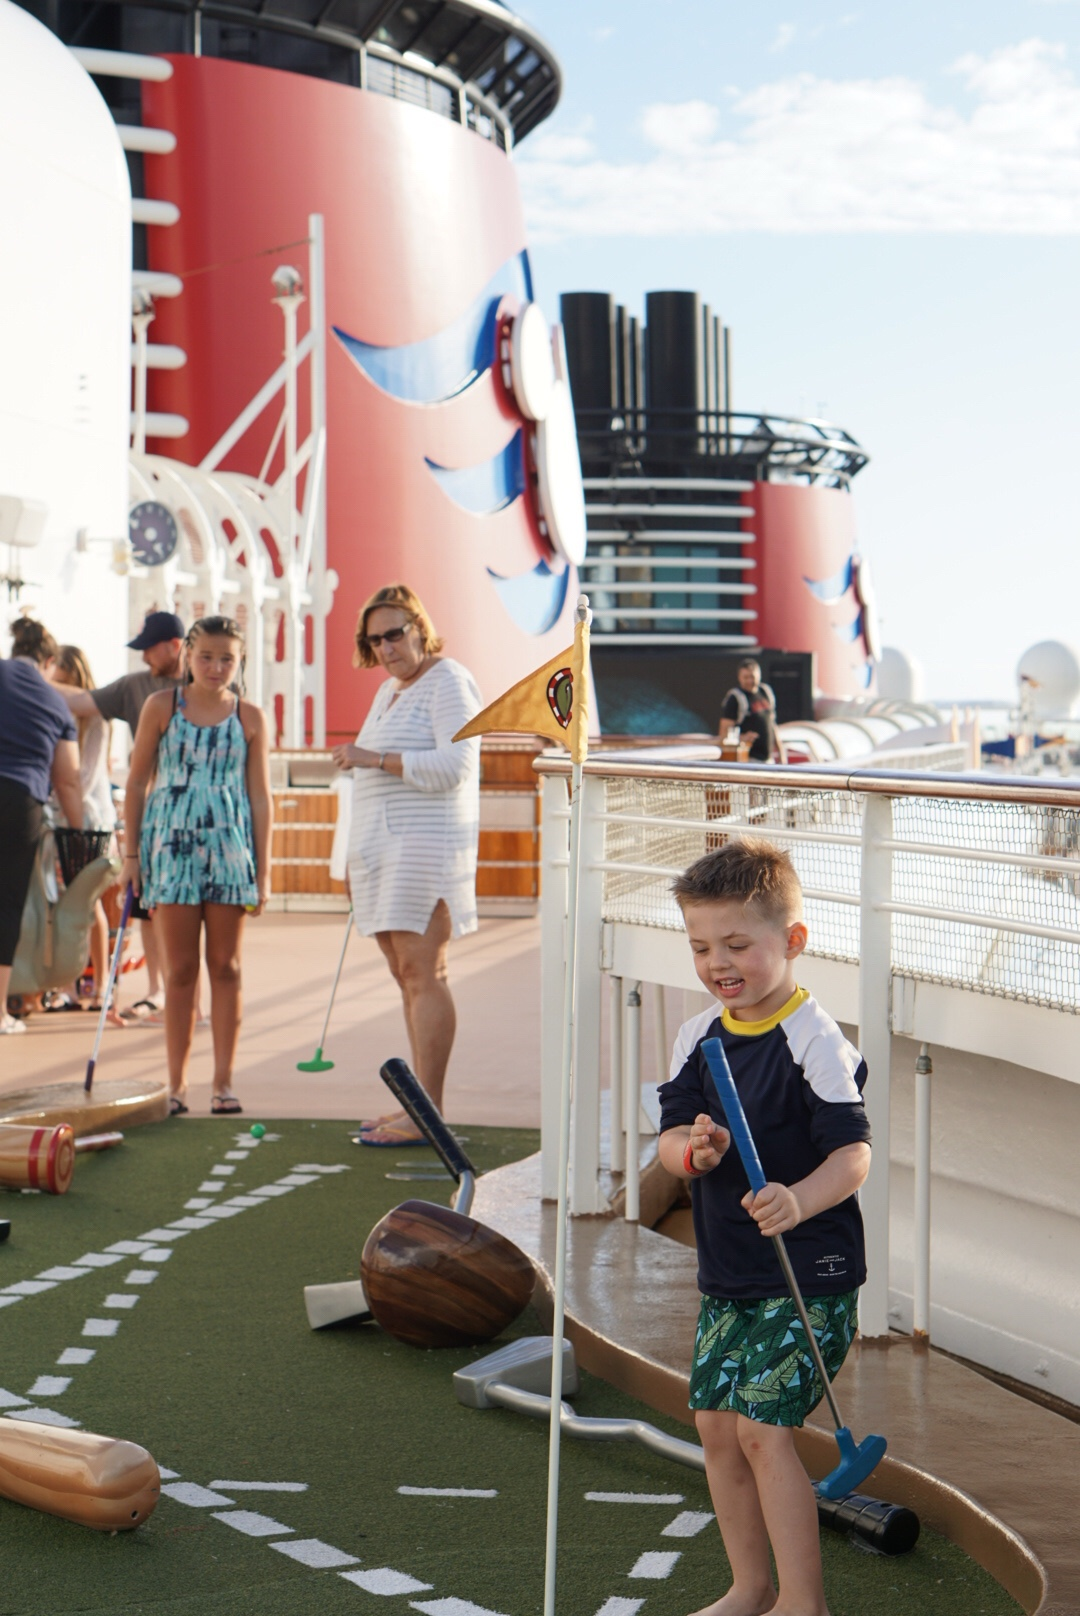 Disney Dream Cruise Ship Activities - DisneySMMC Disney Social Media Moms Celebration 2018 via Misty Nelson #disneysmmc #disneymoms